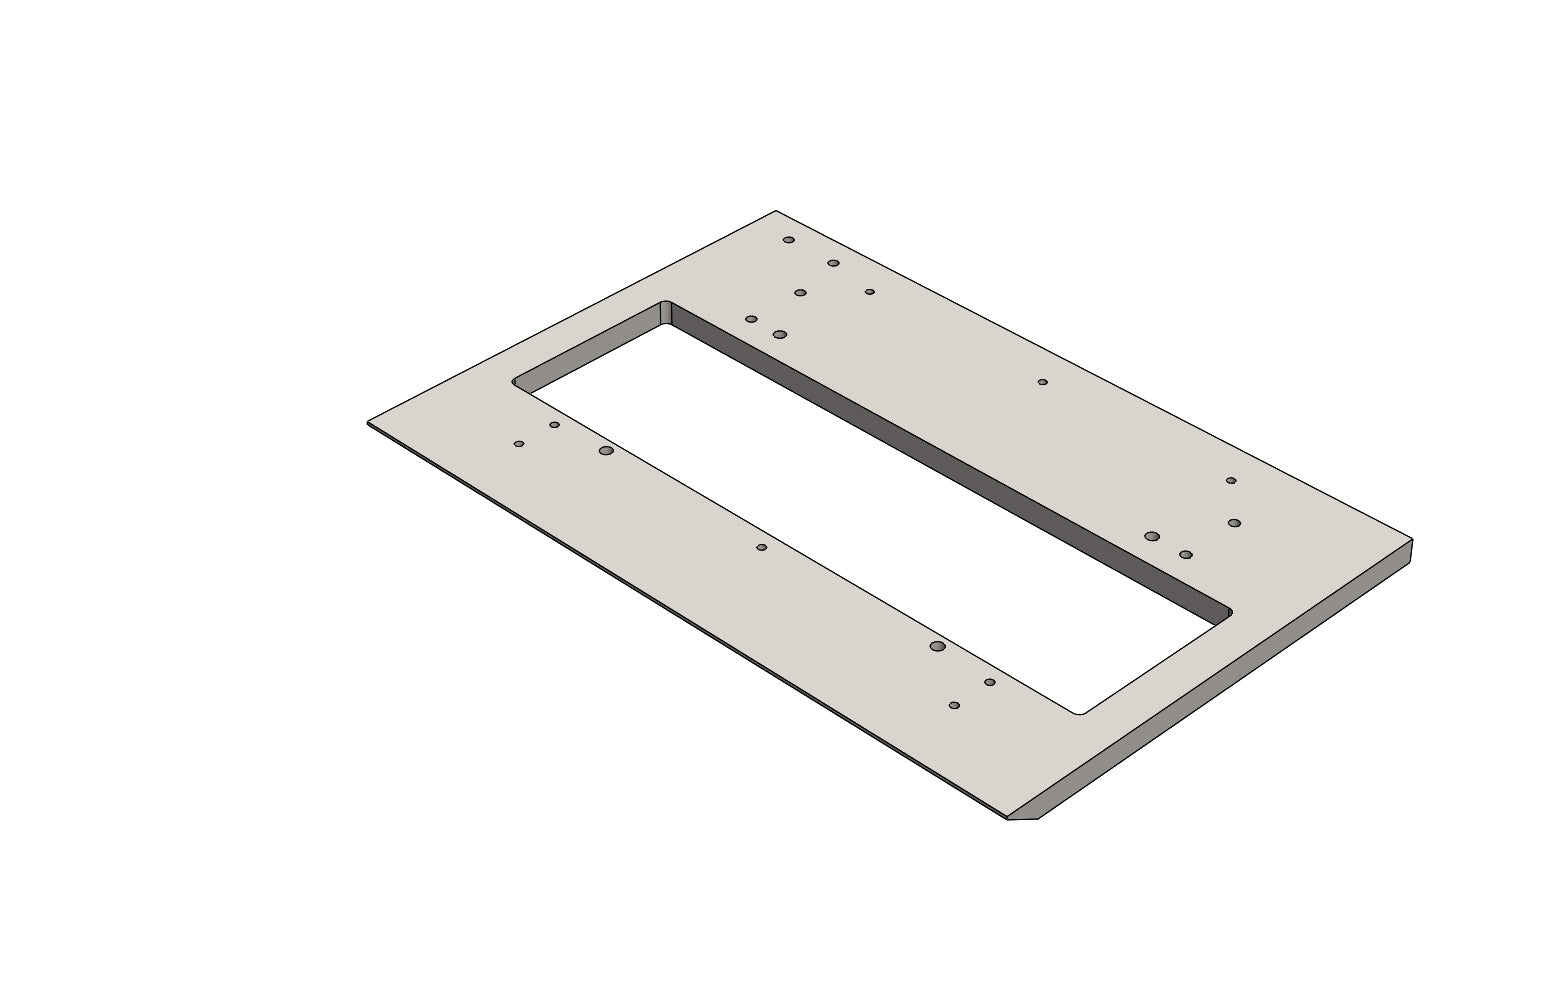 TC6271880A MAIN PLATE - King TC8 Spare Part